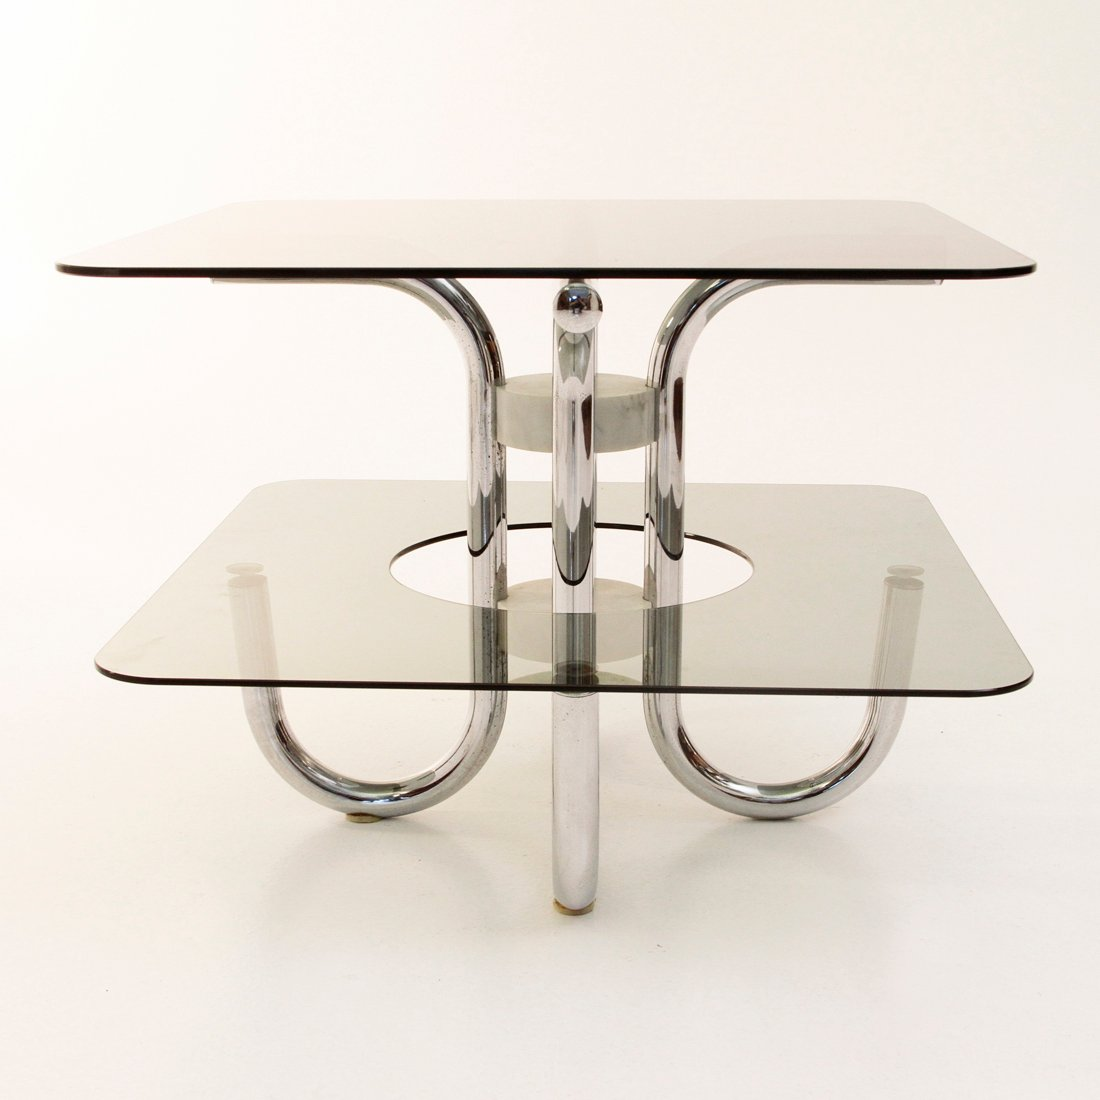 double table basse avec plateau en verre italie 1970s en vente sur pamono. Black Bedroom Furniture Sets. Home Design Ideas